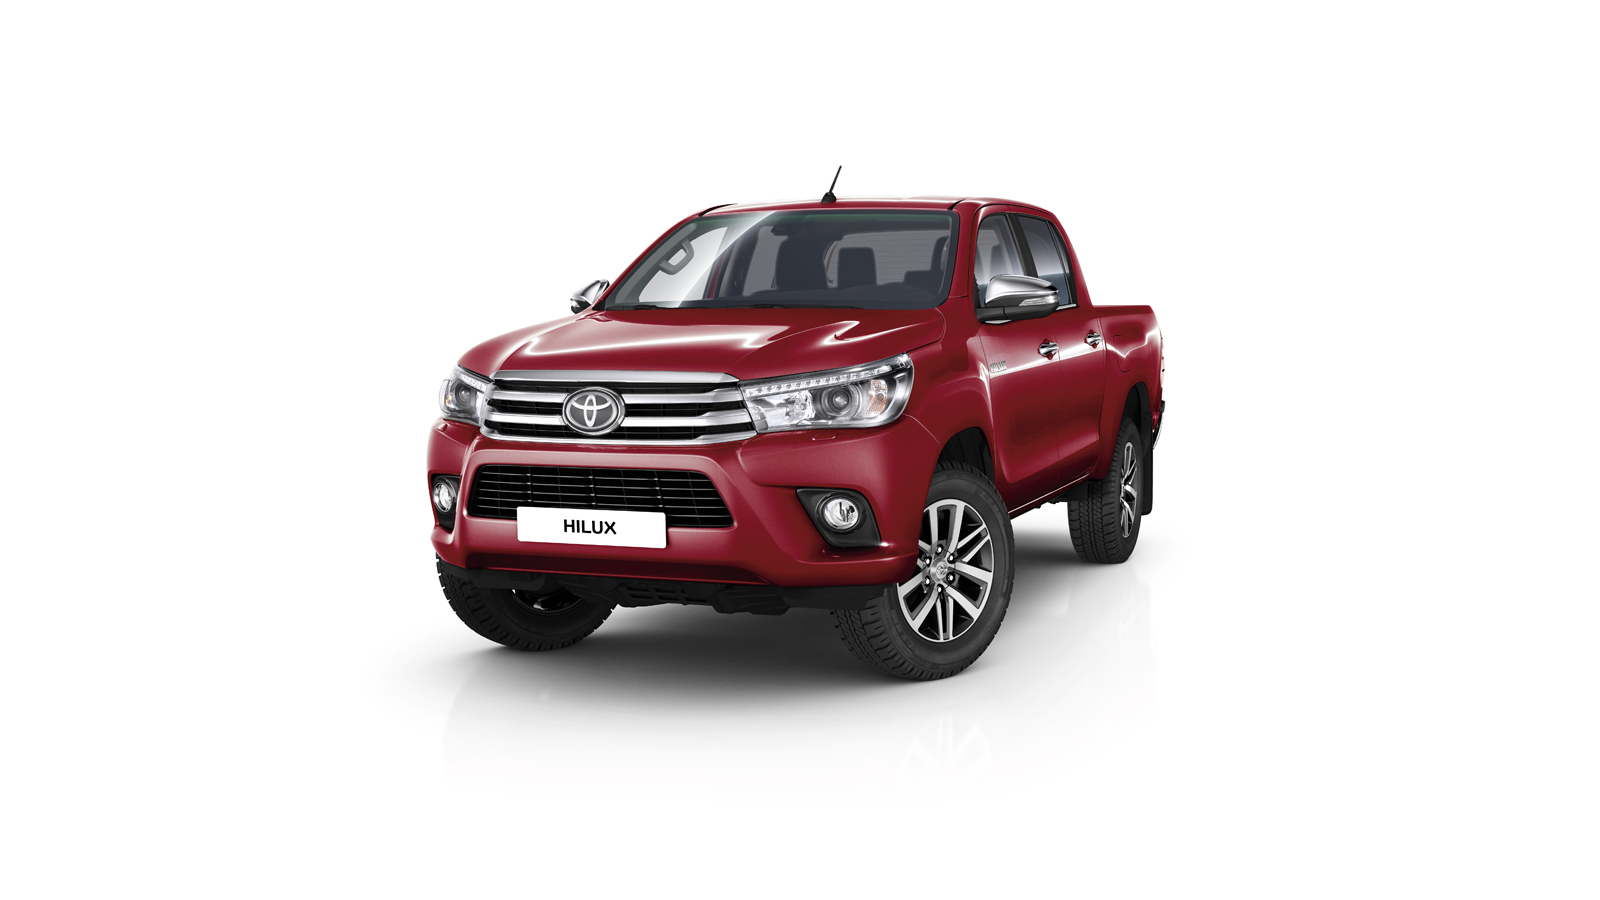 Hilux, Red exterior, front side view, white background.